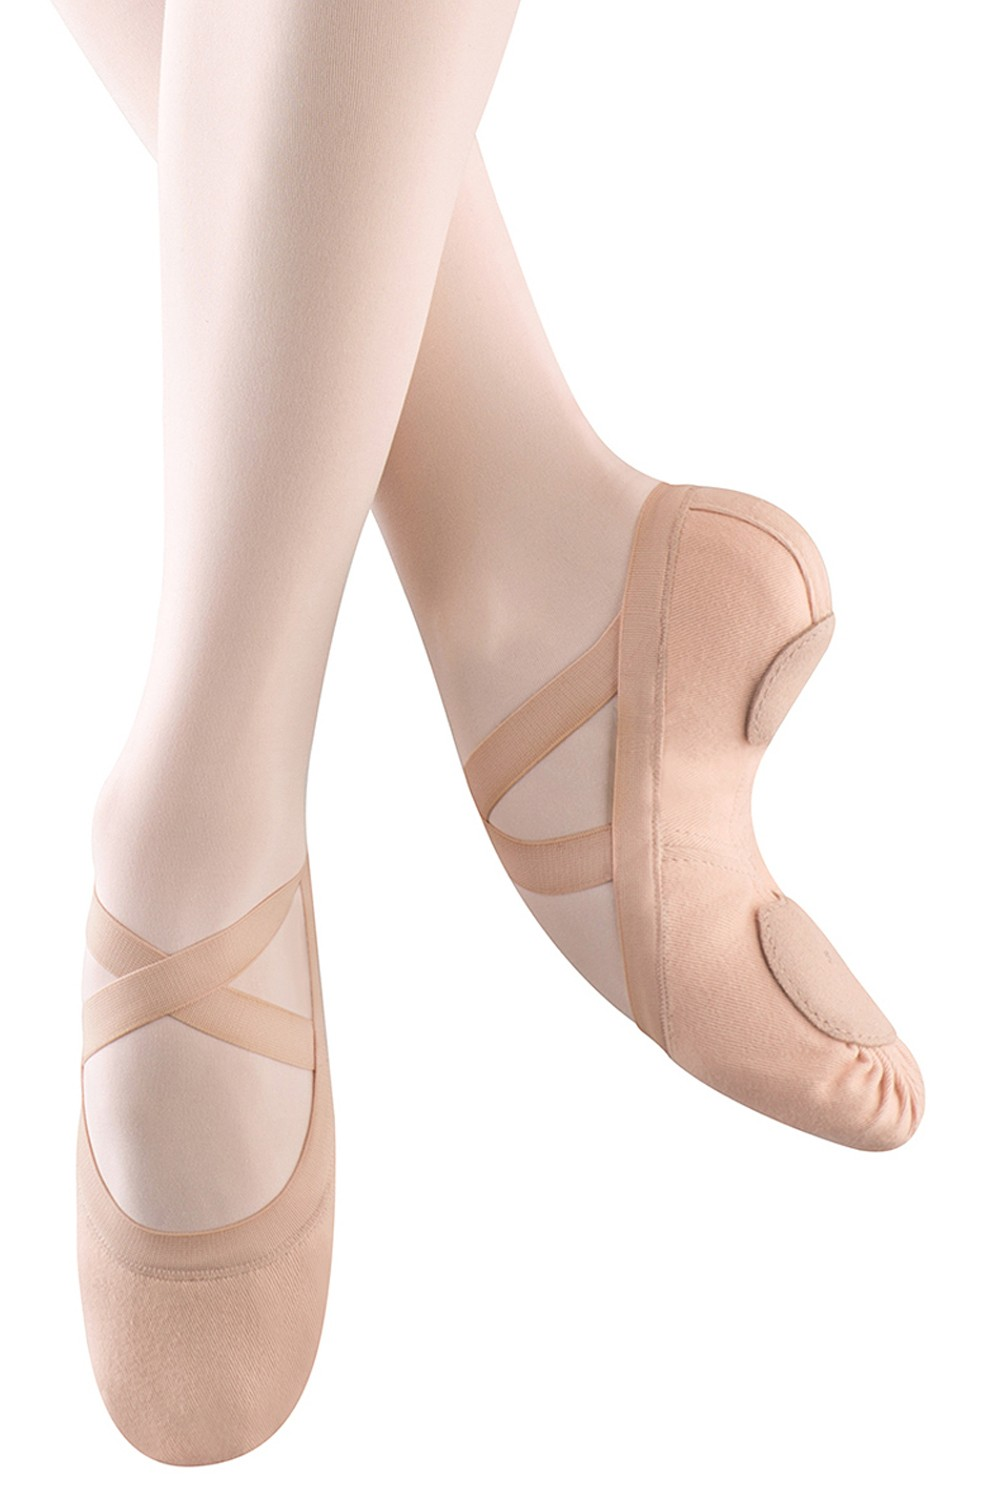 Synchrony Women's Ballet Shoes